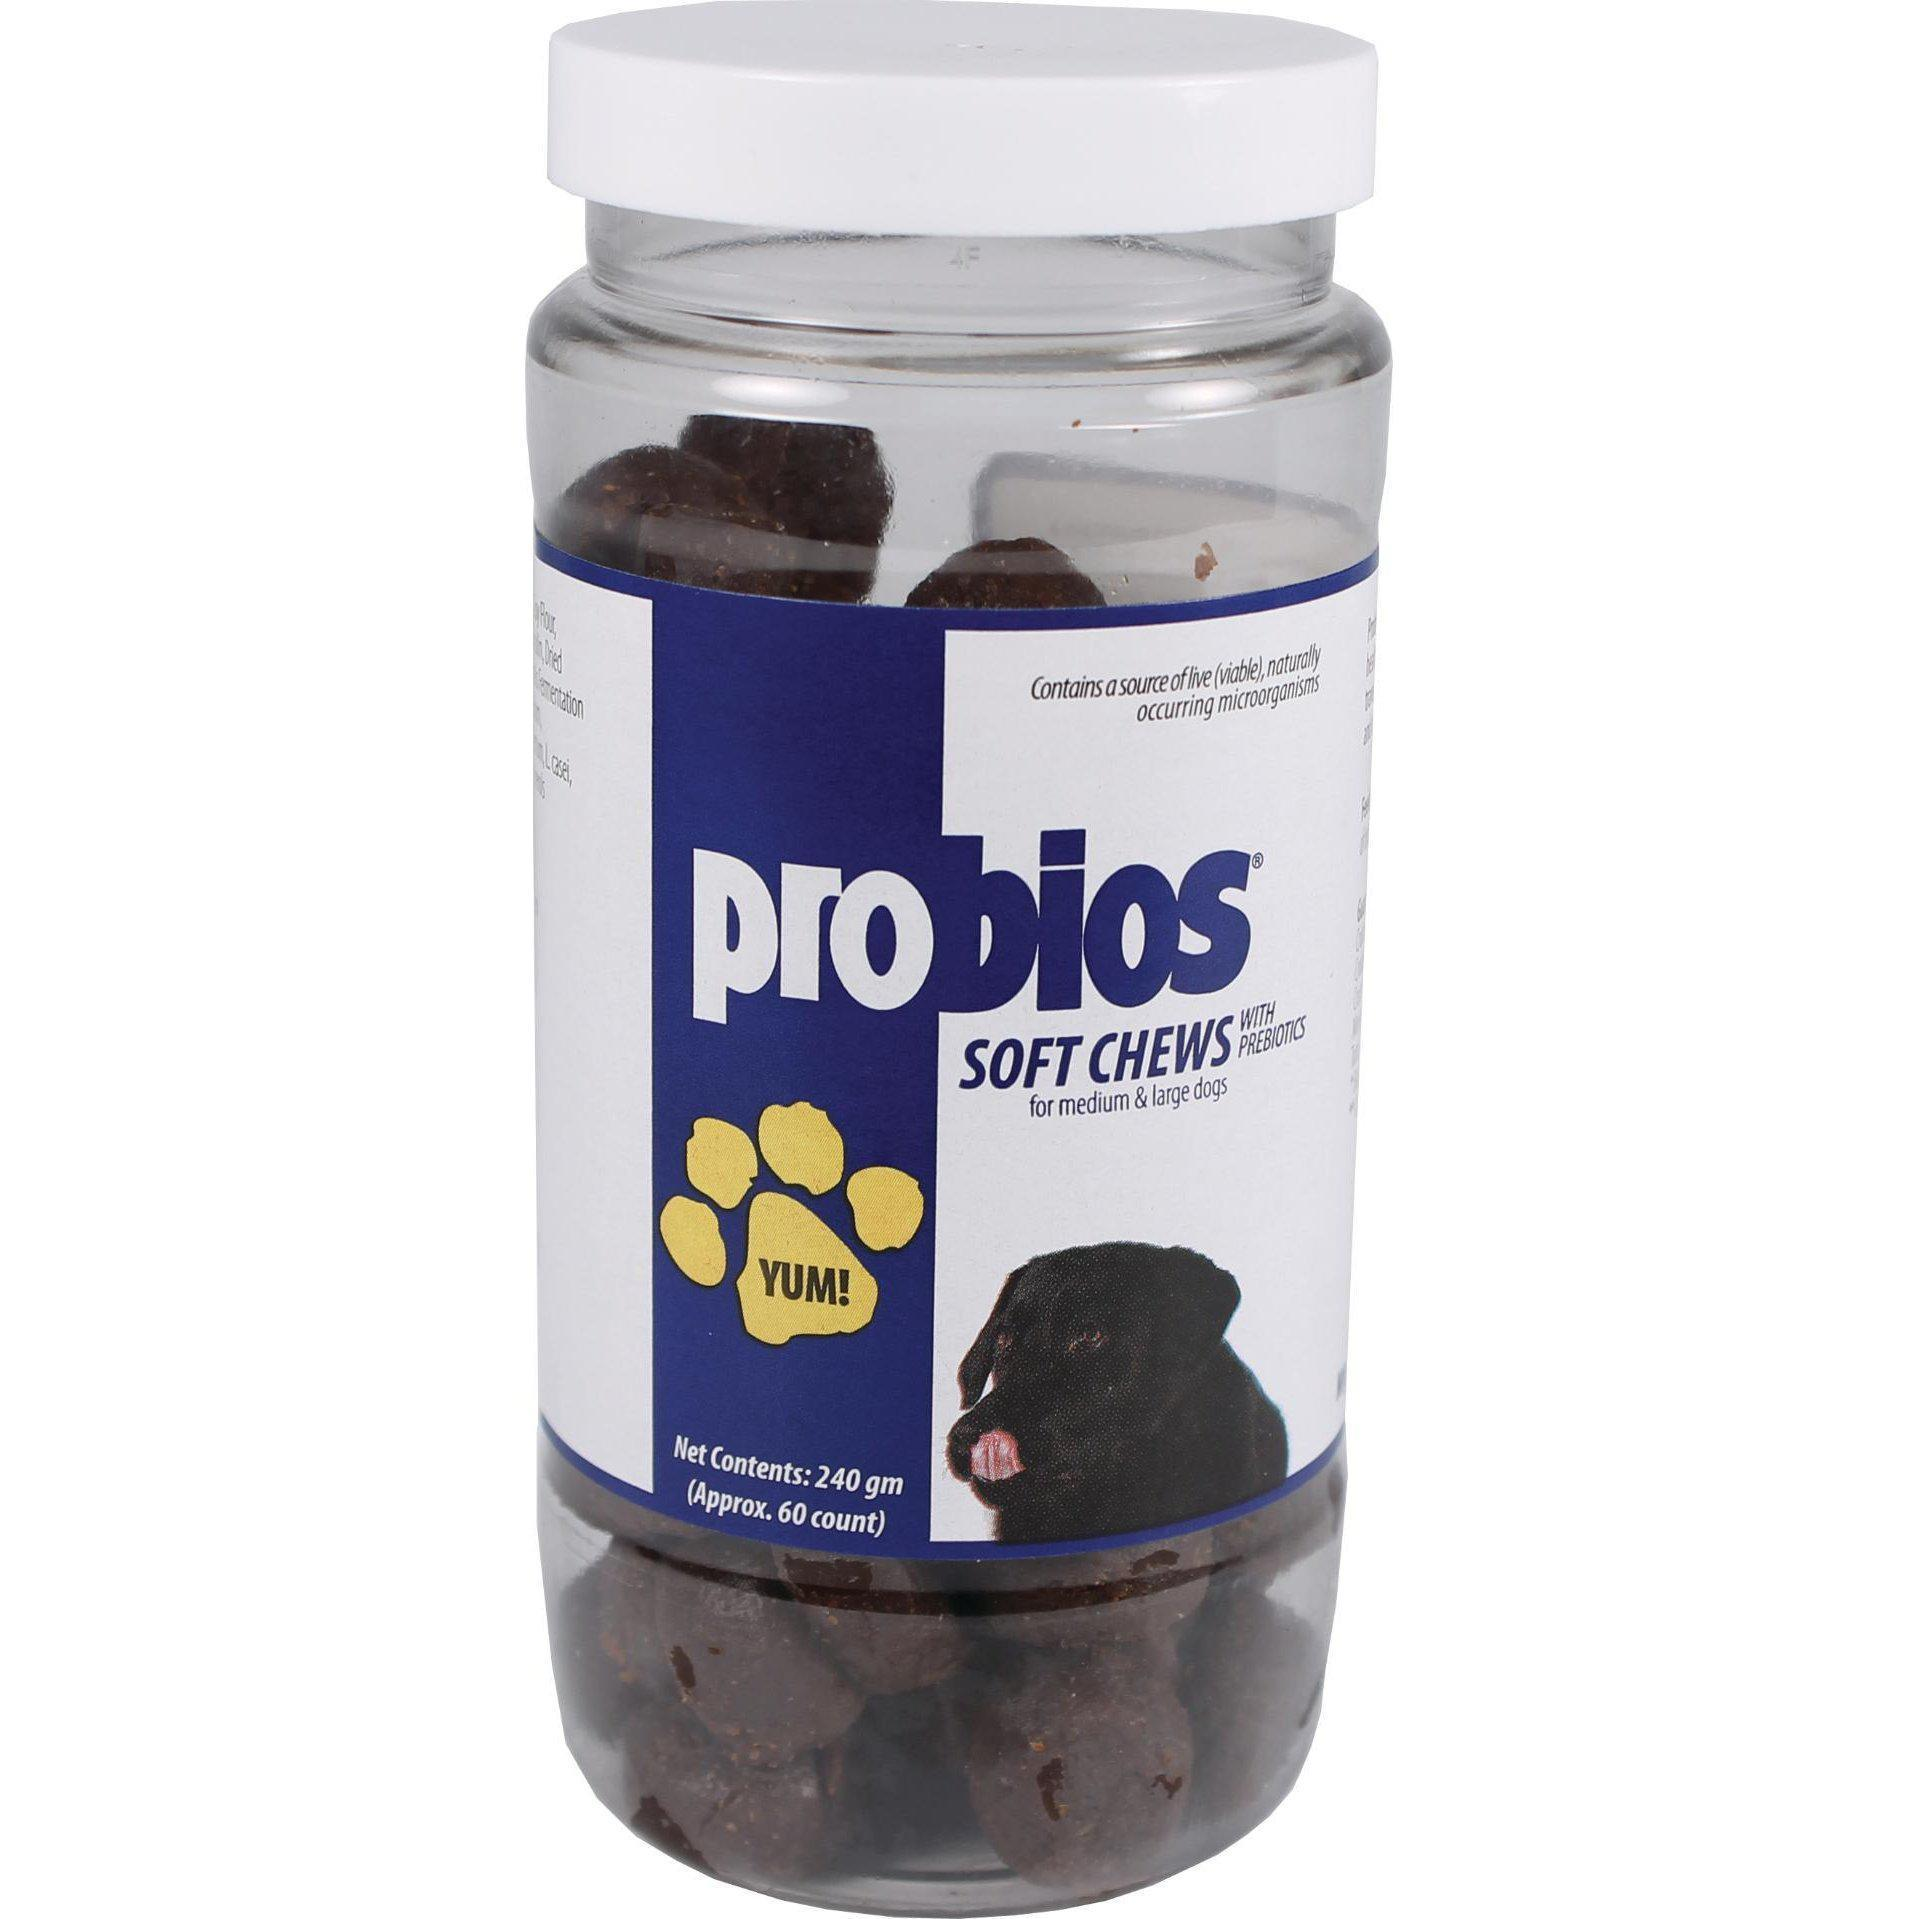 Probios Soft Dog Chews-Vets Plus Probios-DirtyFurClothing